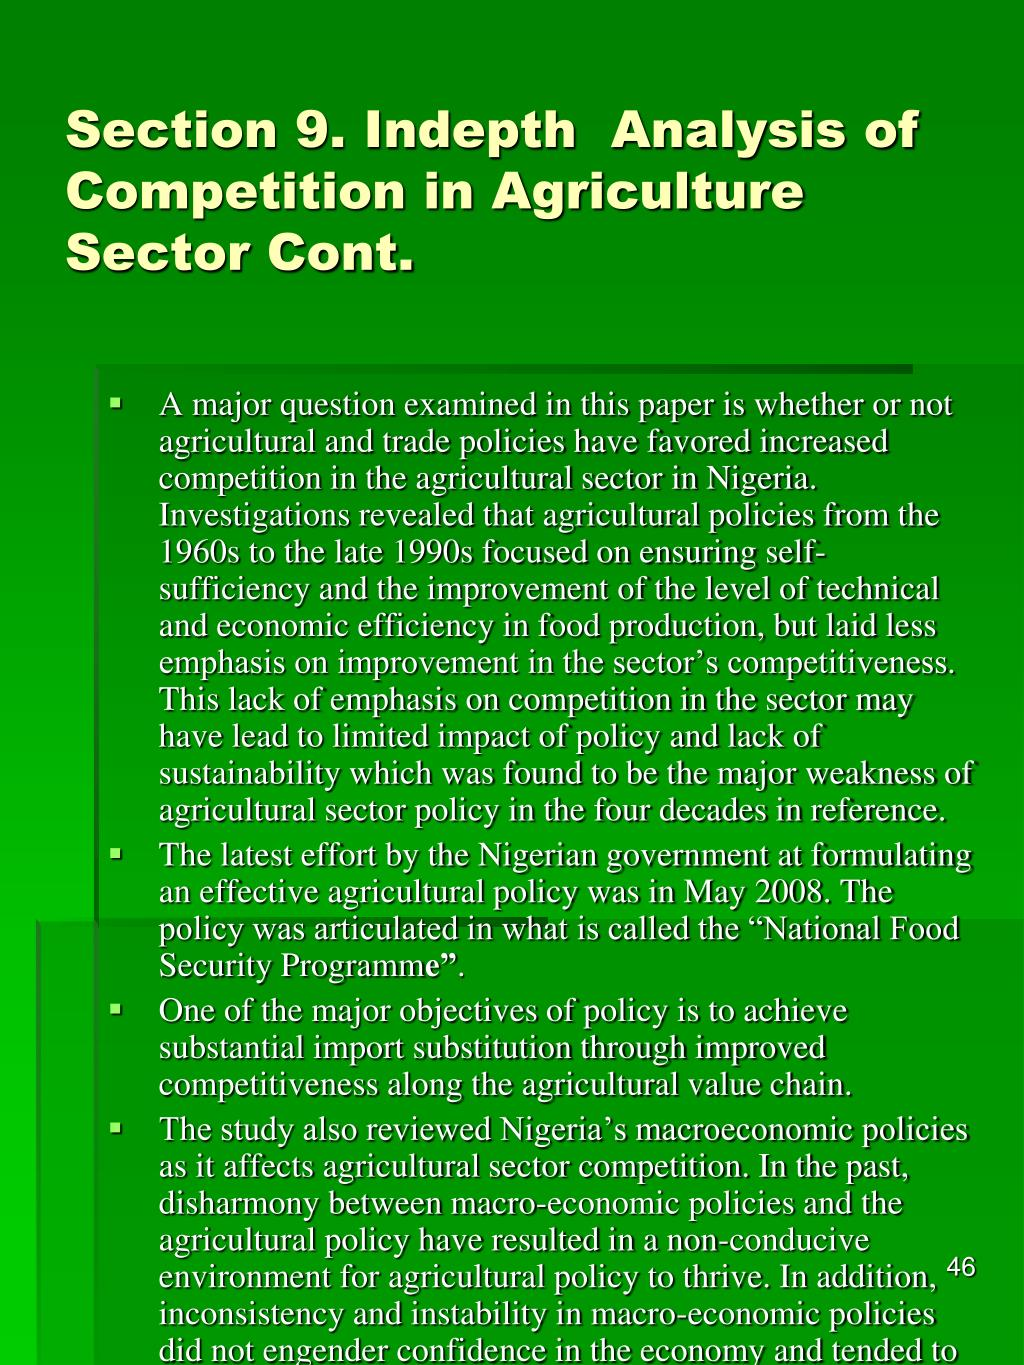 Section 9. Indepth  Analysis of Competition in Agriculture Sector Cont.